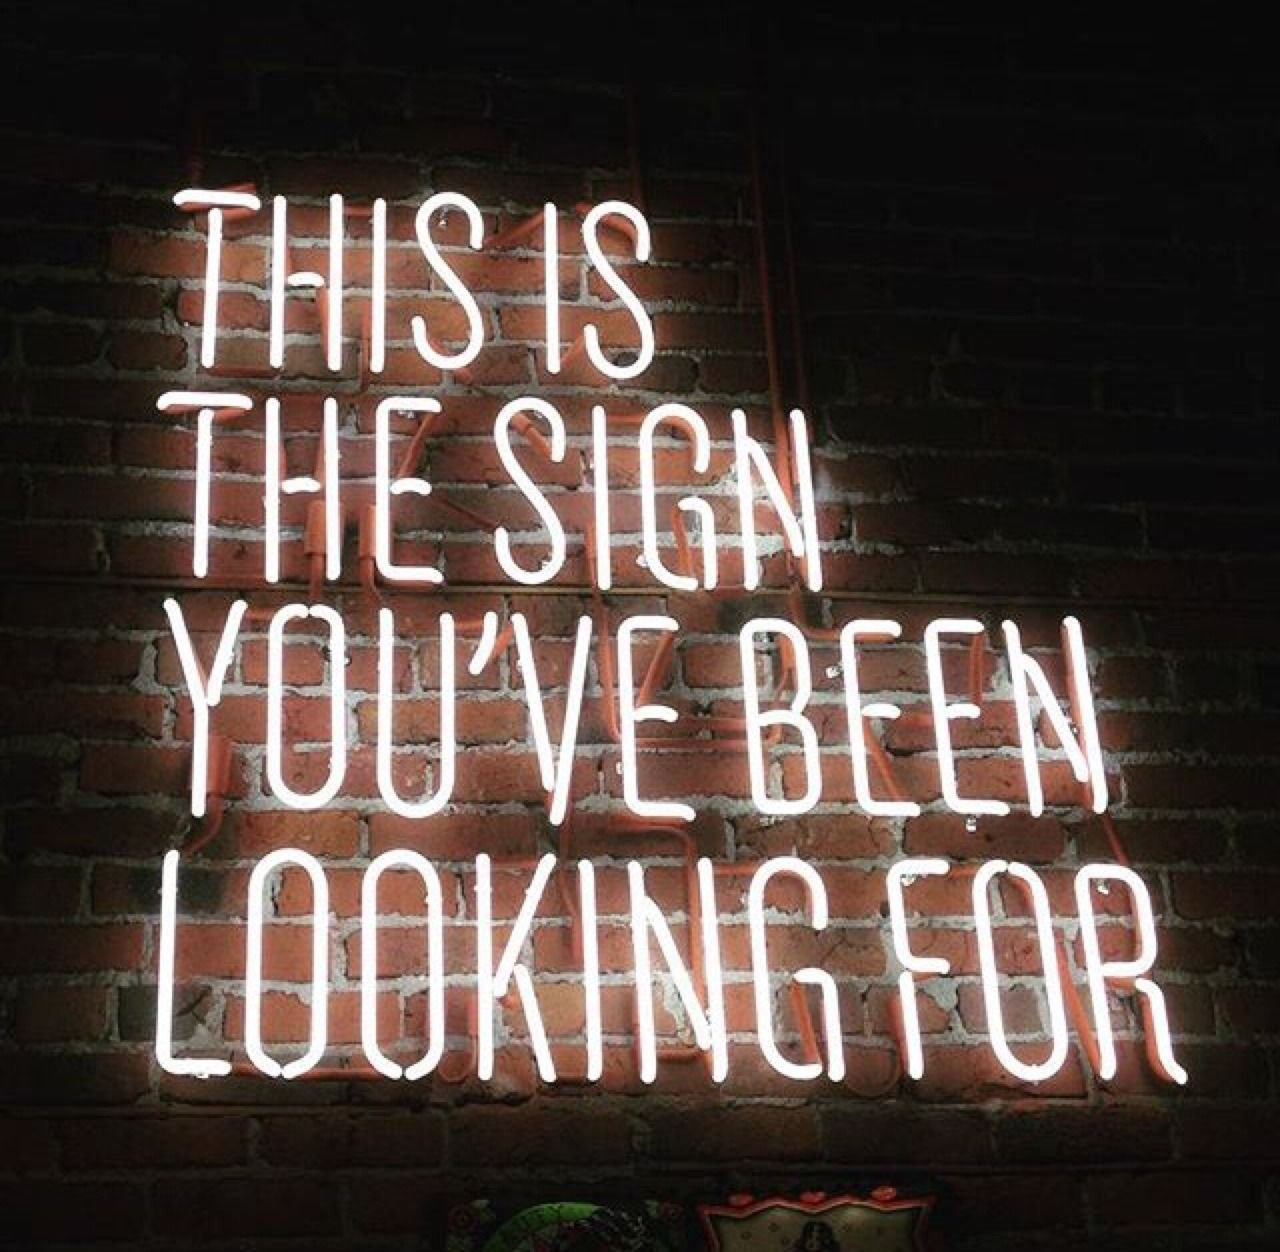 Neon Sign Quotes Neon Signs | quotes | Neon Signs, Signs, Quotes Neon Sign Quotes